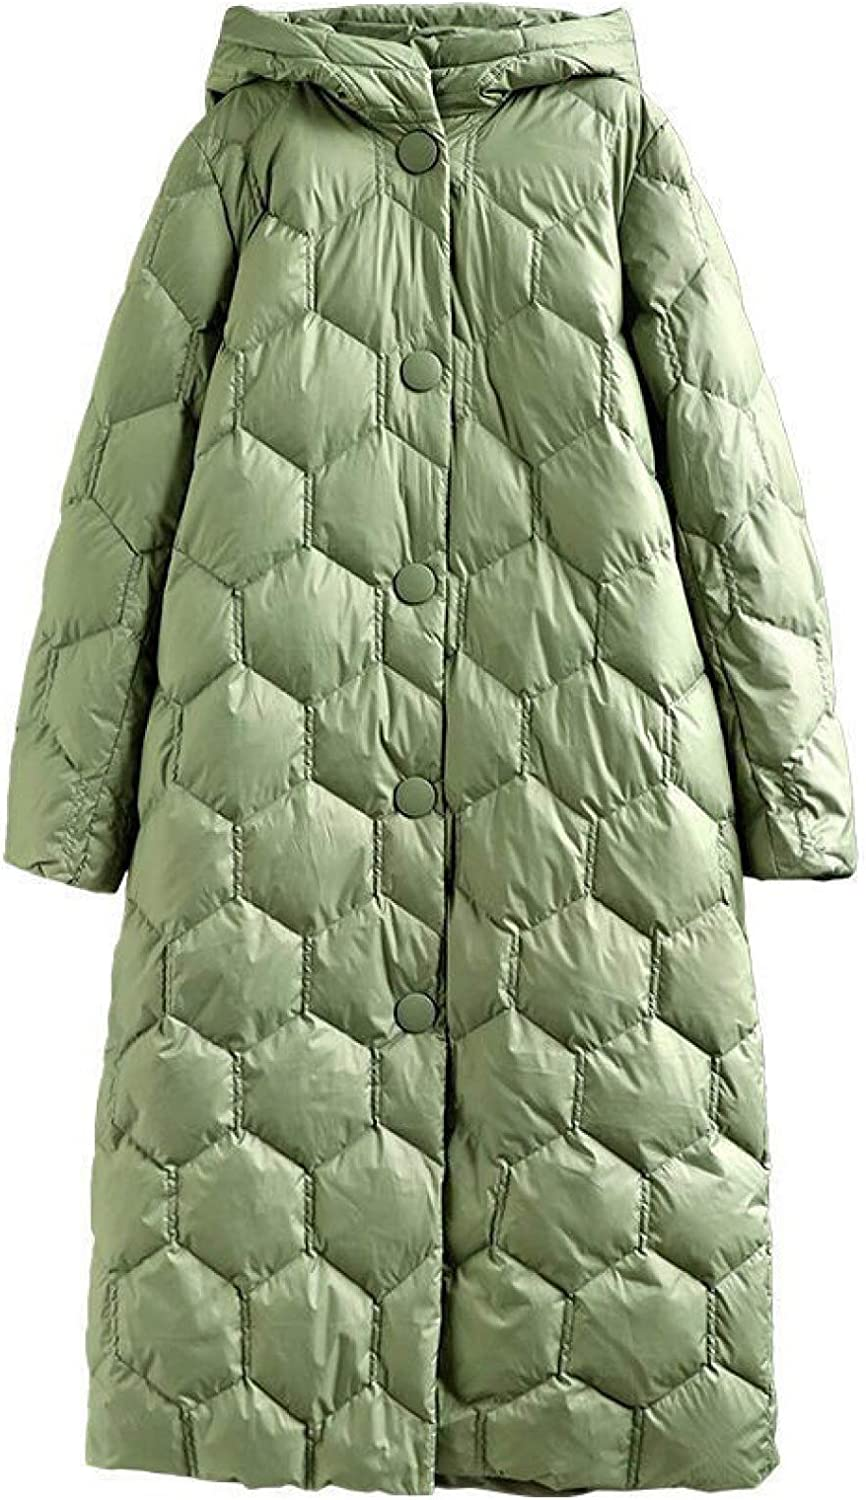 Ladies Long Puffer Jacket , Women's Insulated Hooded Jacket with Pockets